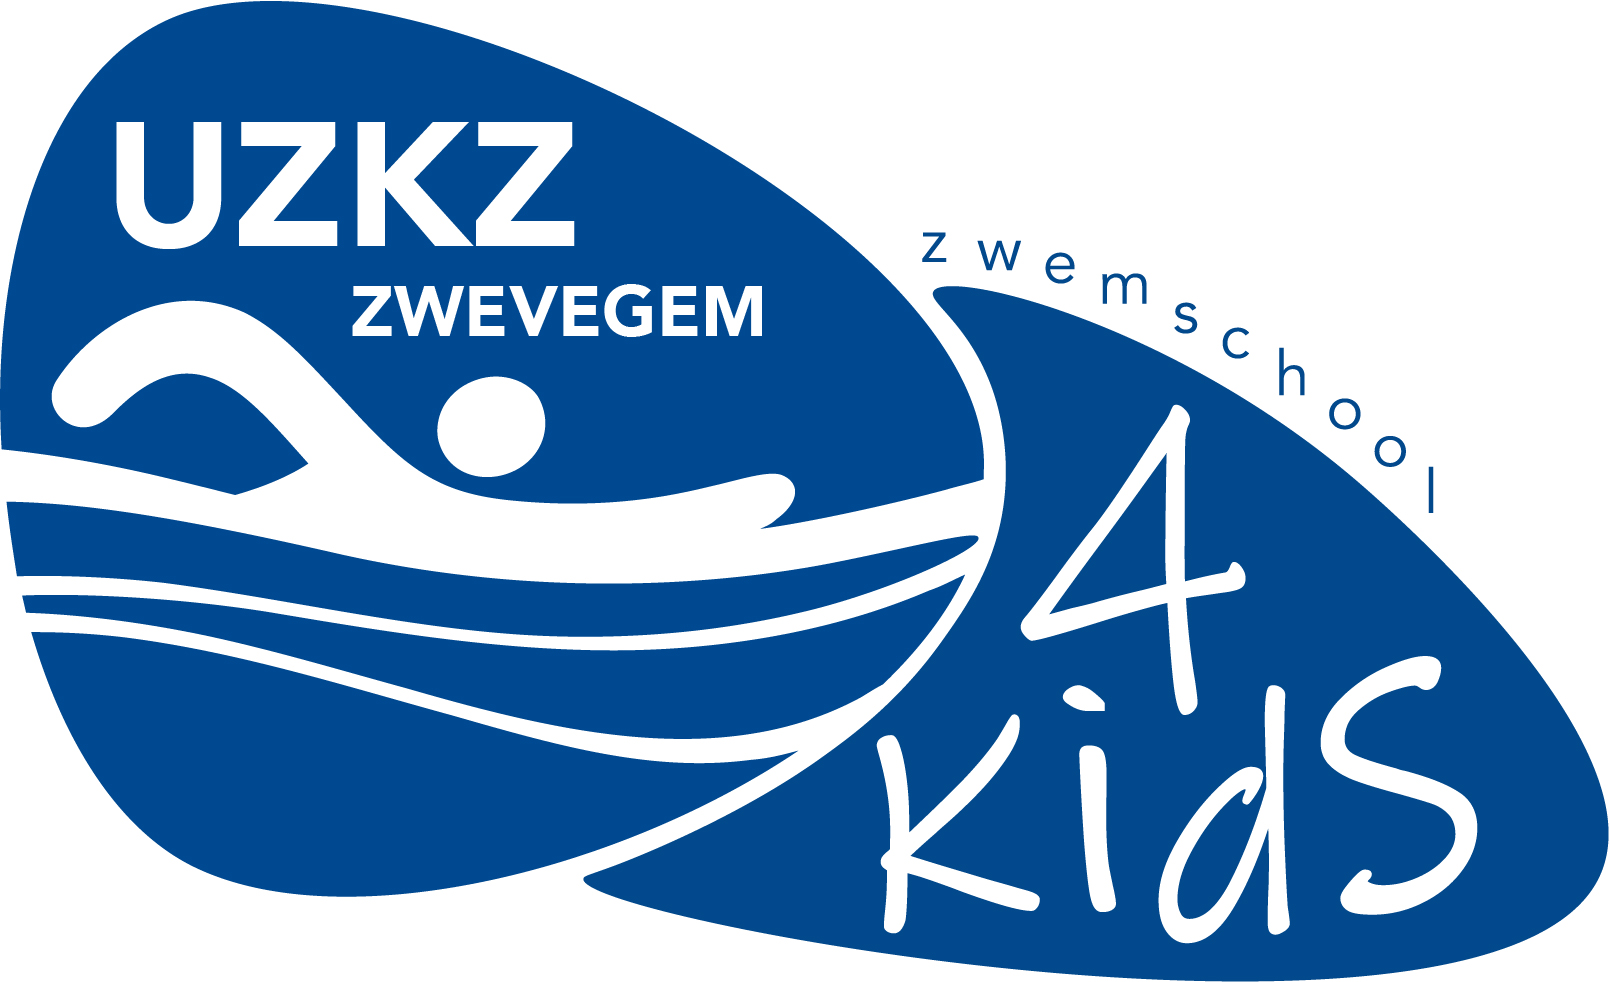 logo uzkz4kids DEF wit back